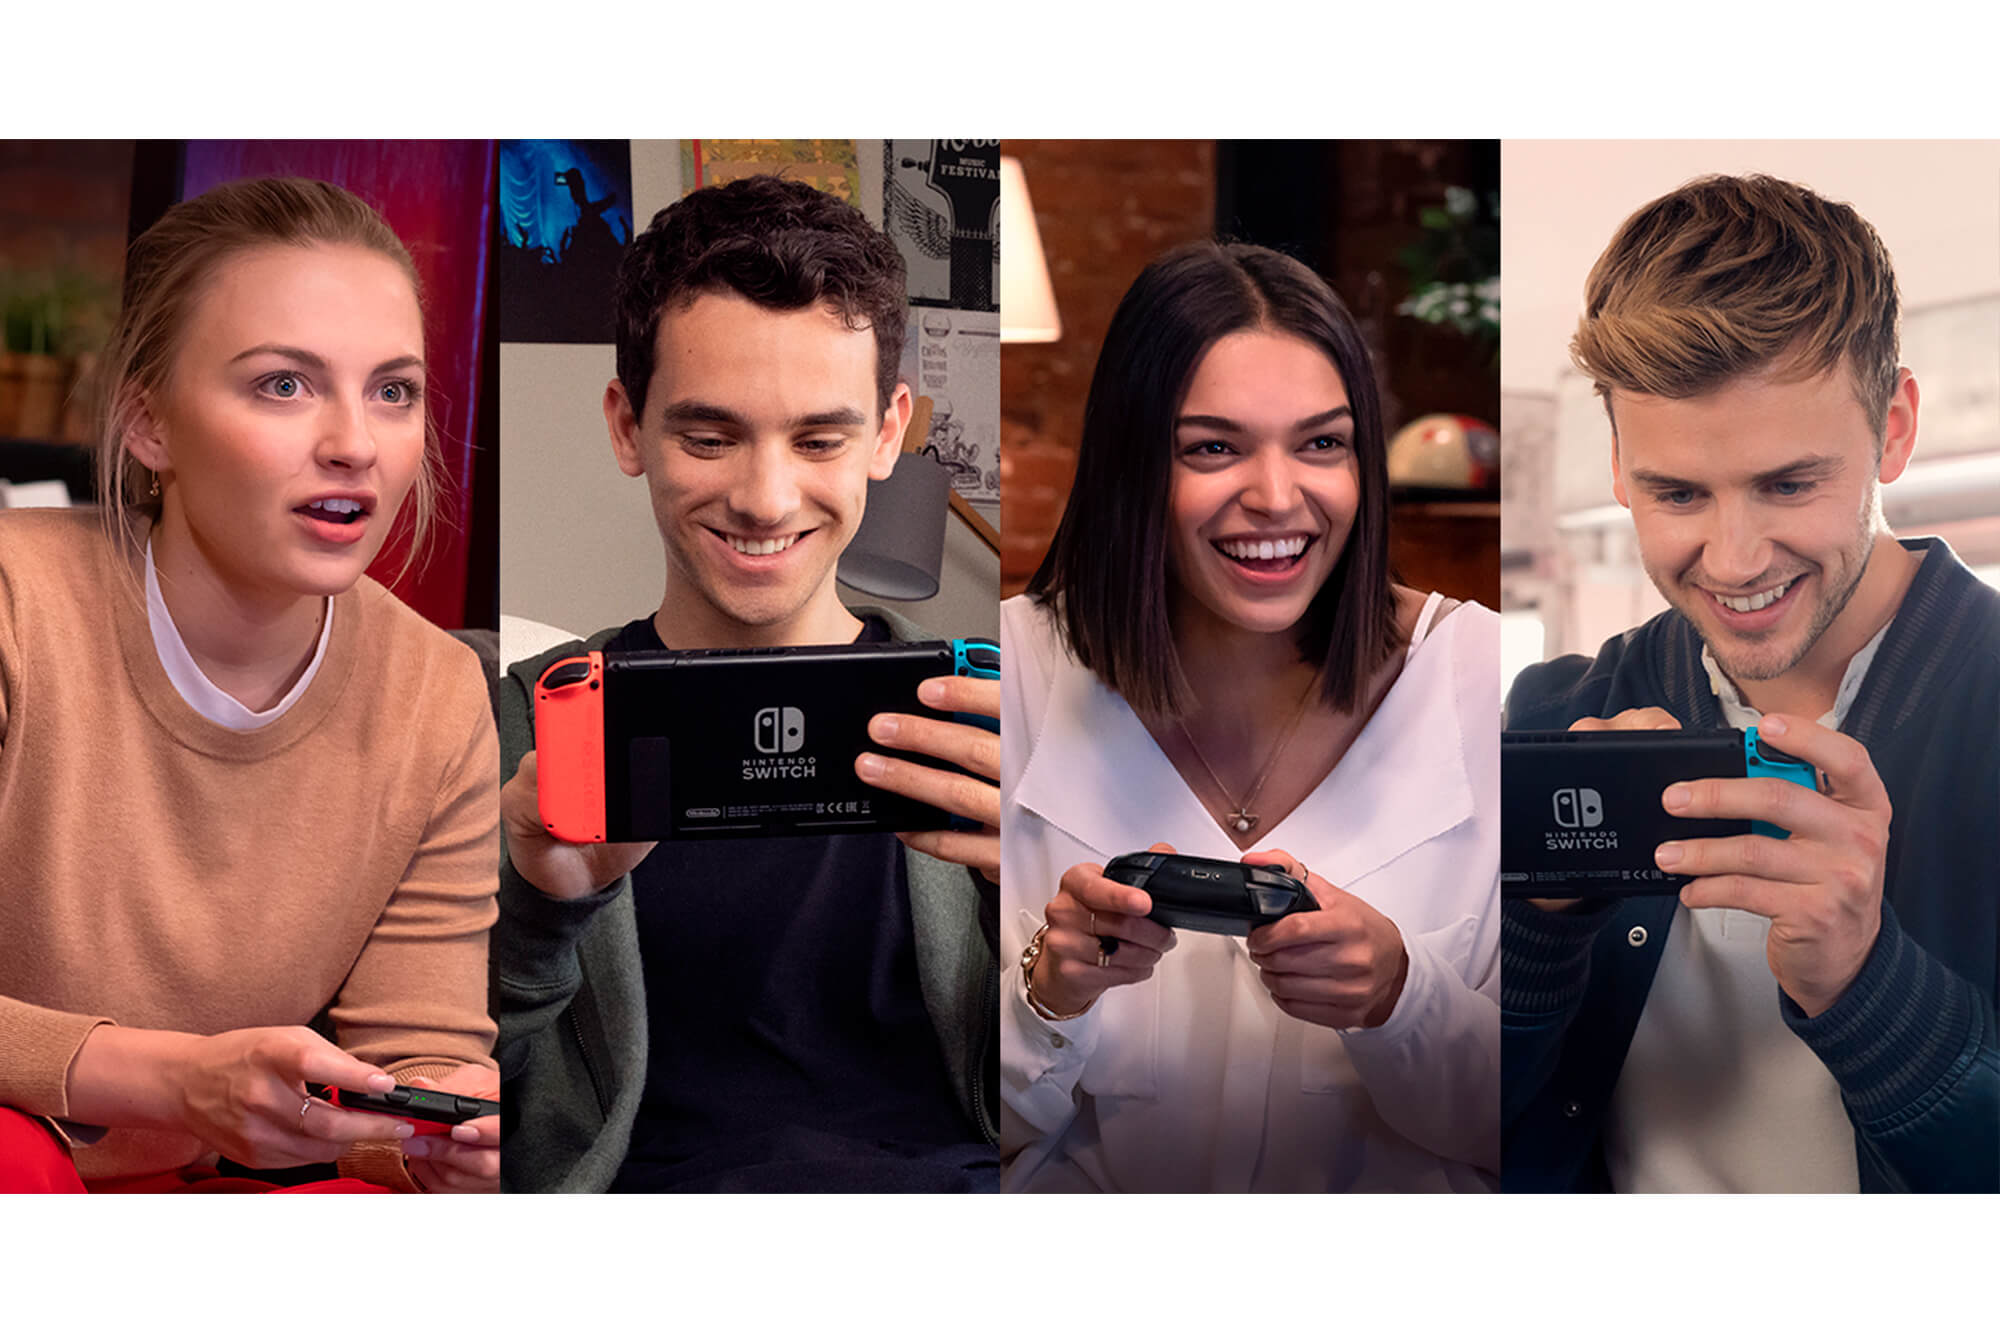 Link up to eight consoles for multiplayer